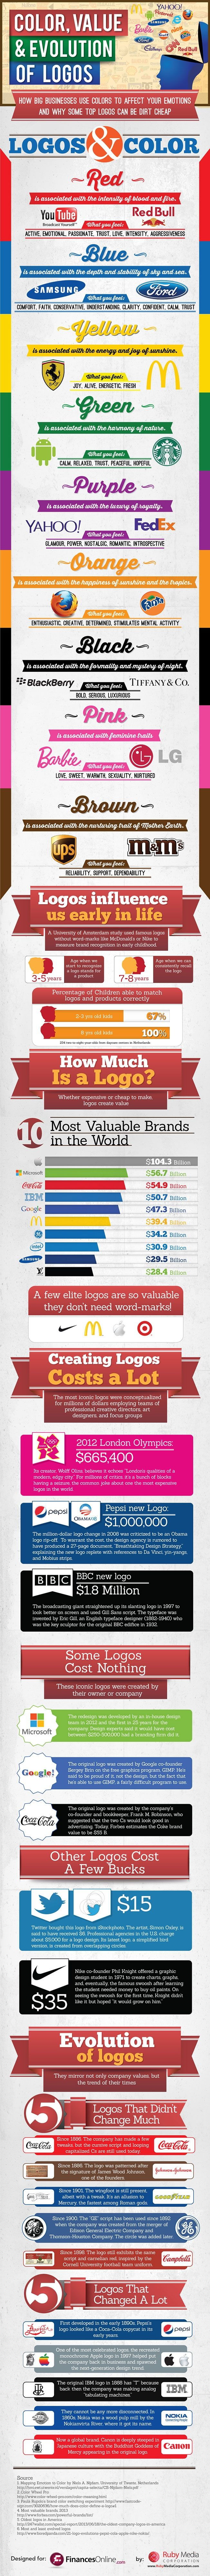 Infographic: What the Color of Your Logo Says About Your Brand | Adweek